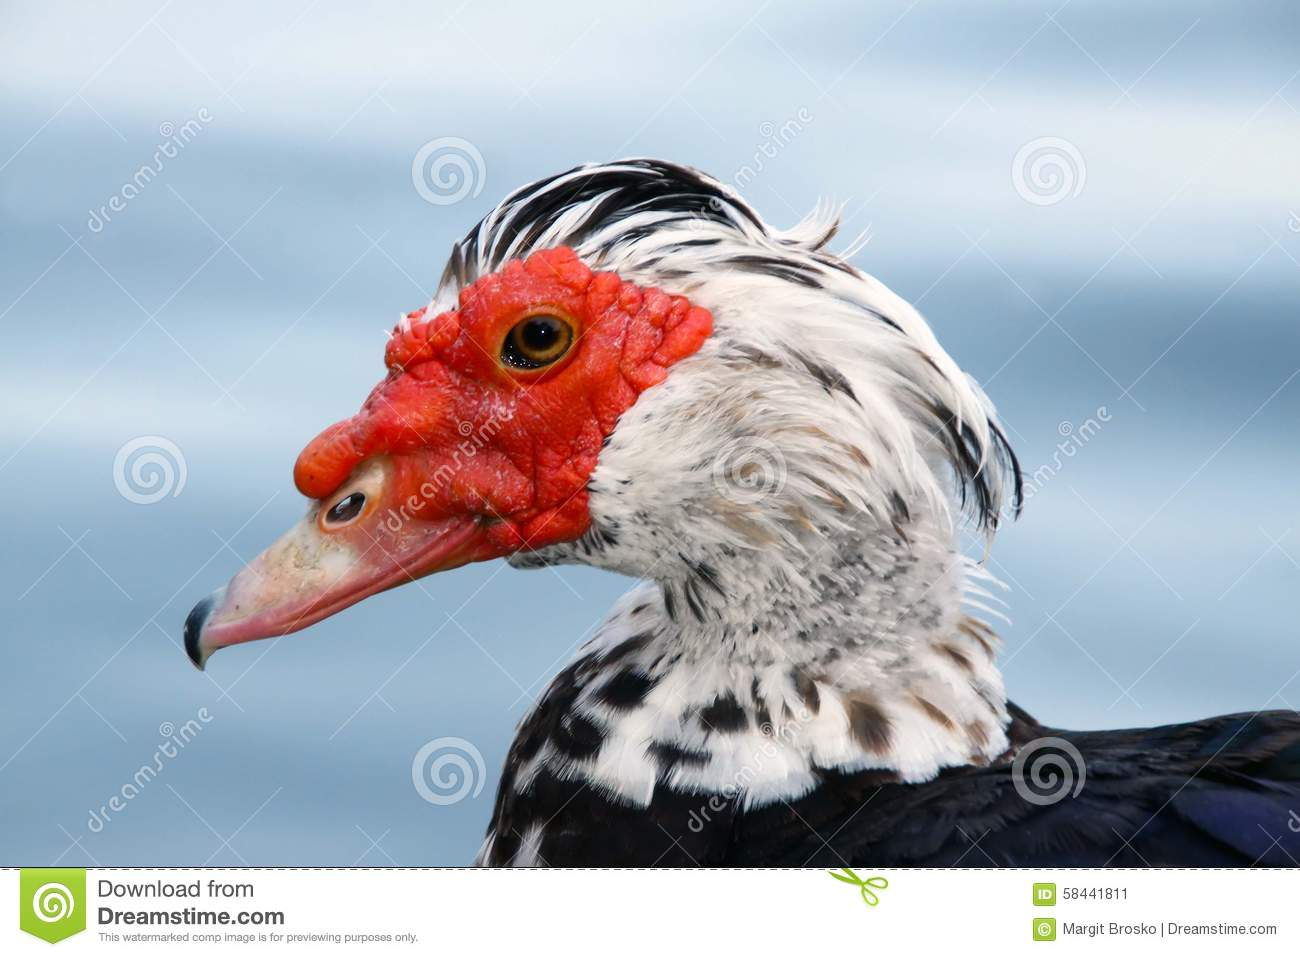 Muscovy duck stock image  Image of large, caruncle, head